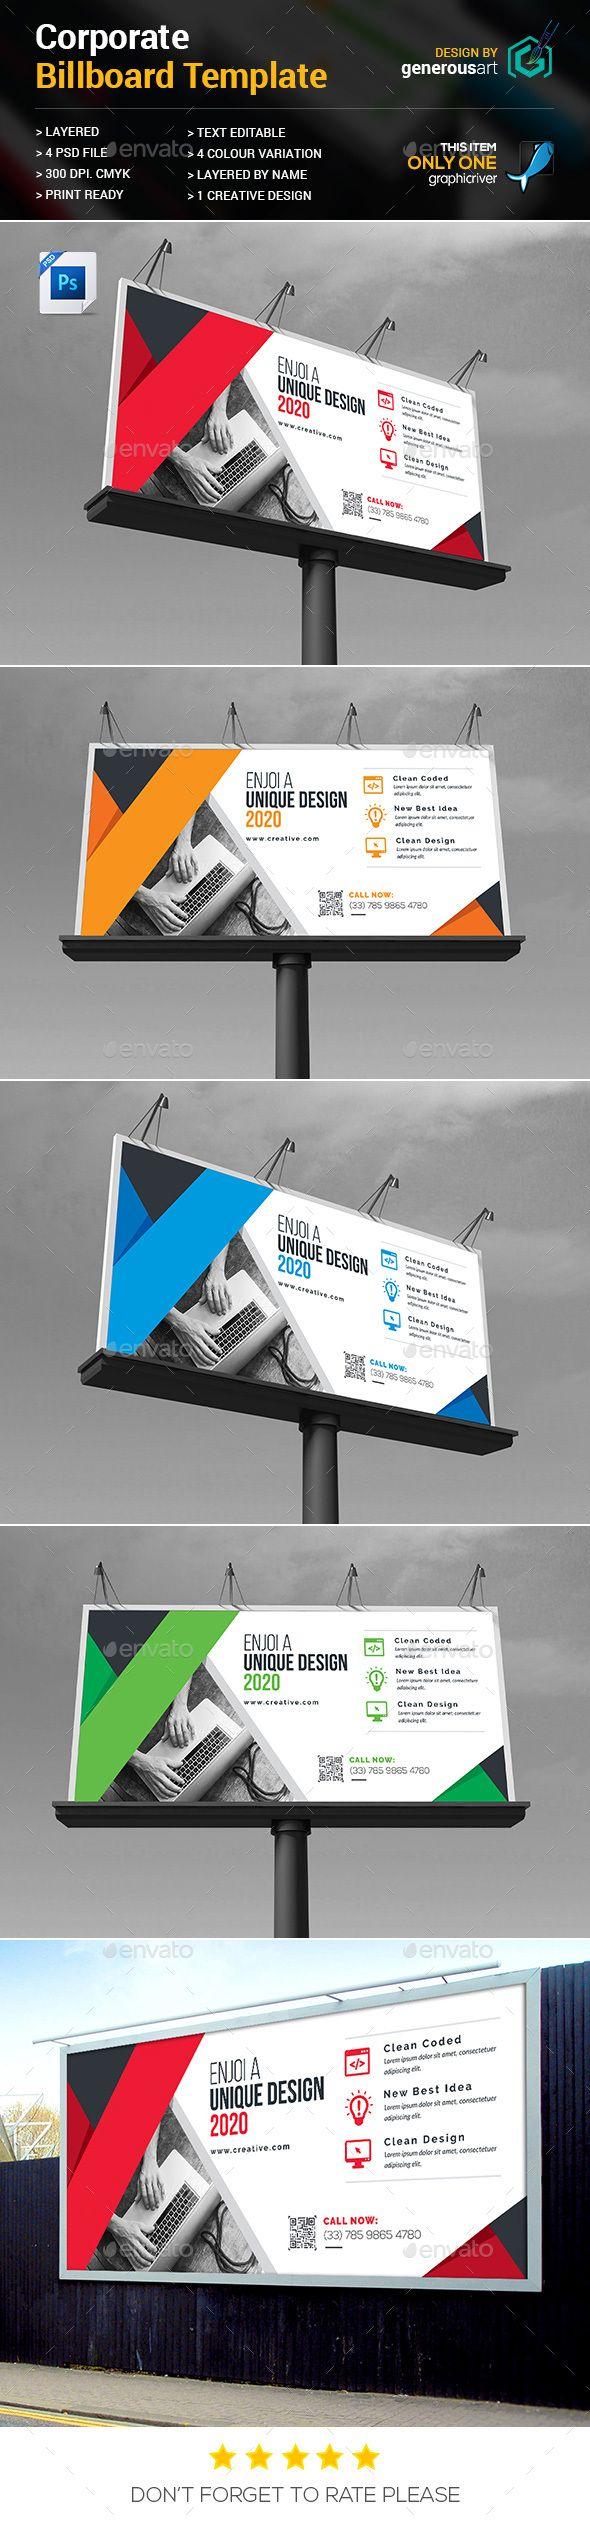 Billboard Template PSD